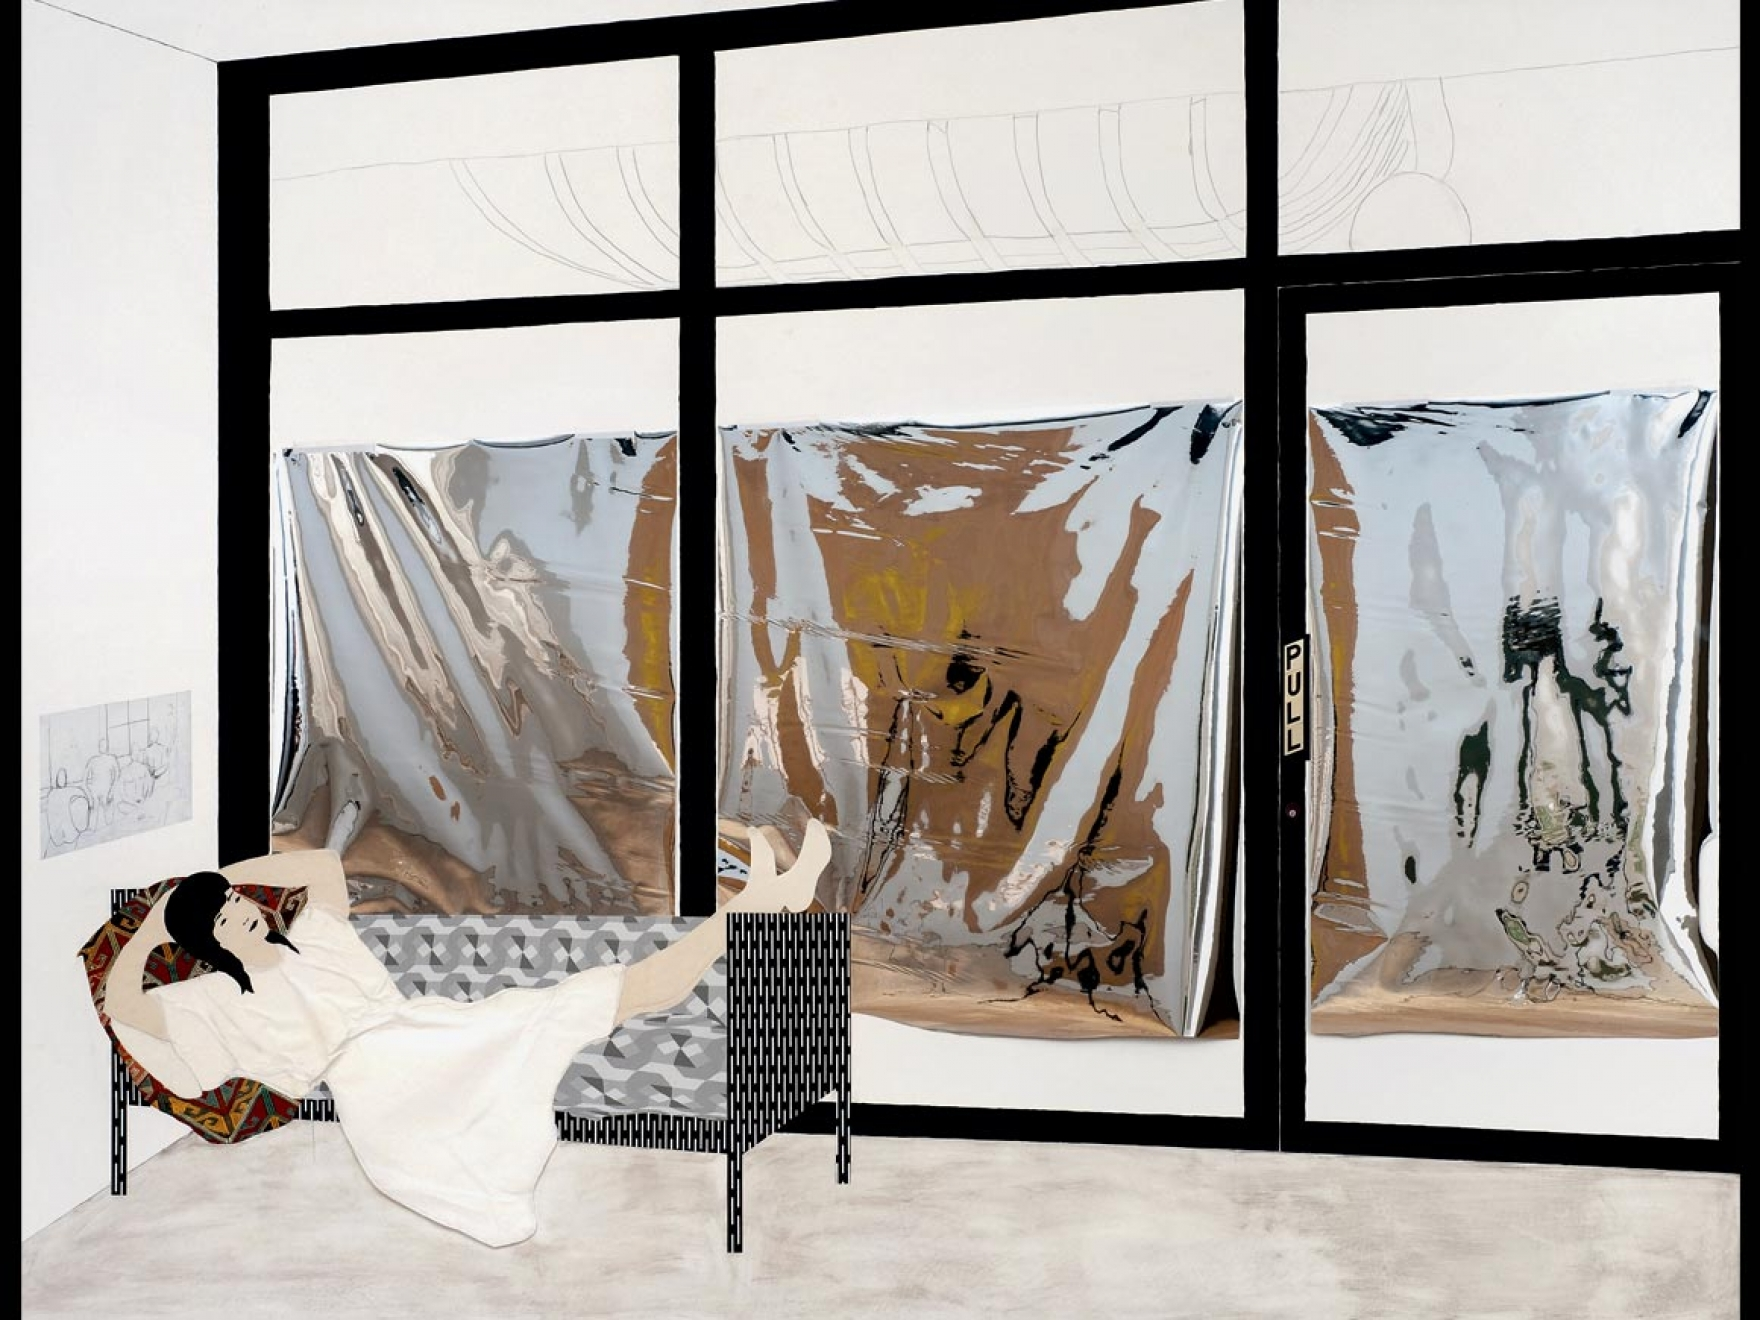 Mixed media collage of woman figure lounging on couch